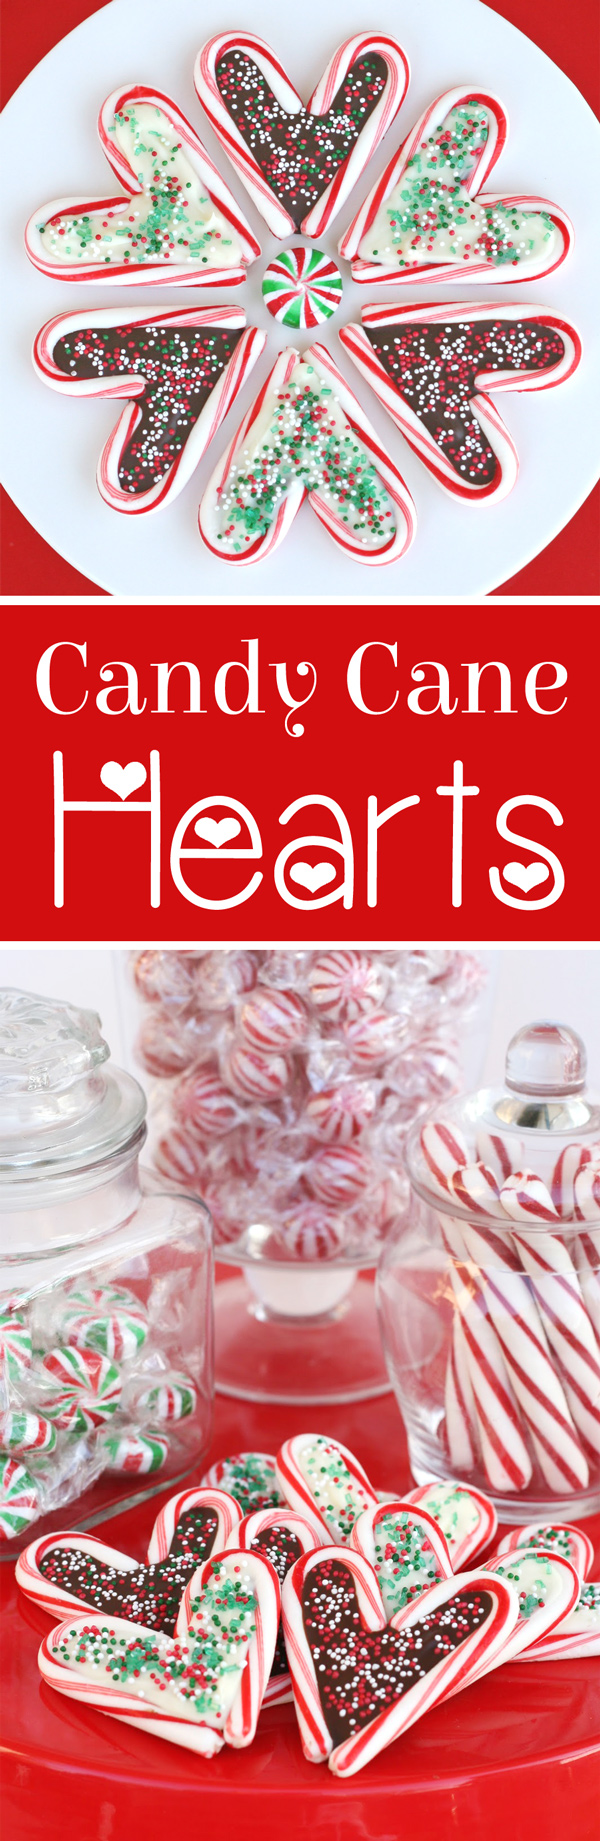 So cute and creative! Candy Cane Hearts by GloriousTreats.com